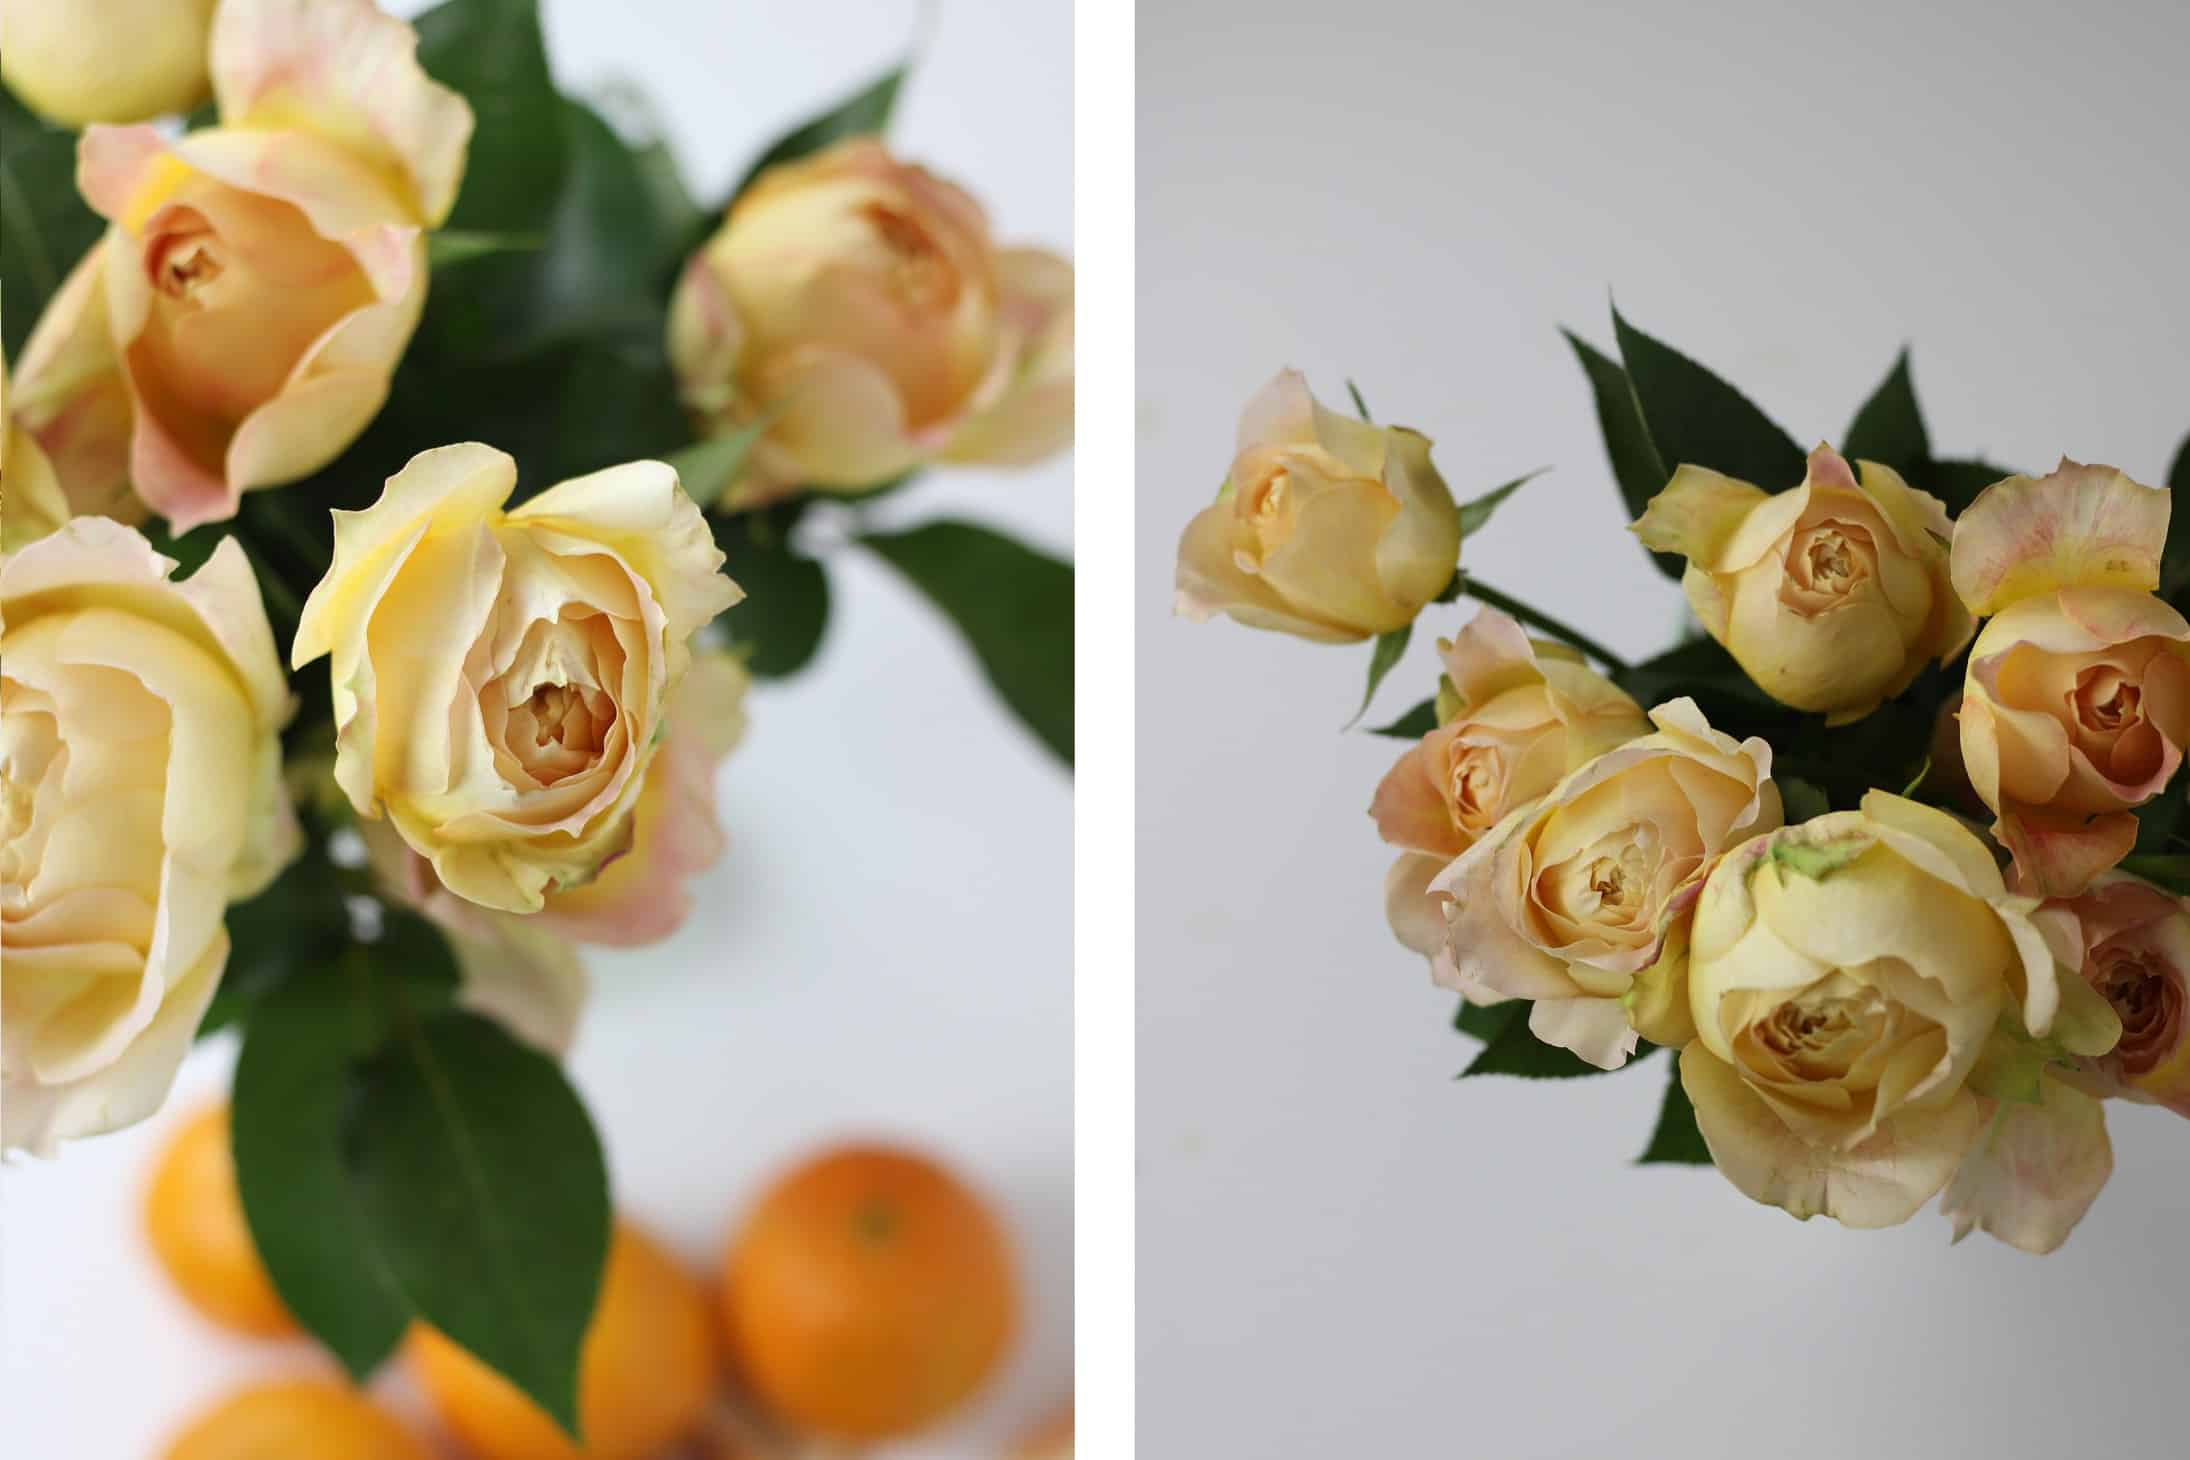 Caramel Antike rose, peach color rose, yellow rose, yellow garden rose, fragrant rose